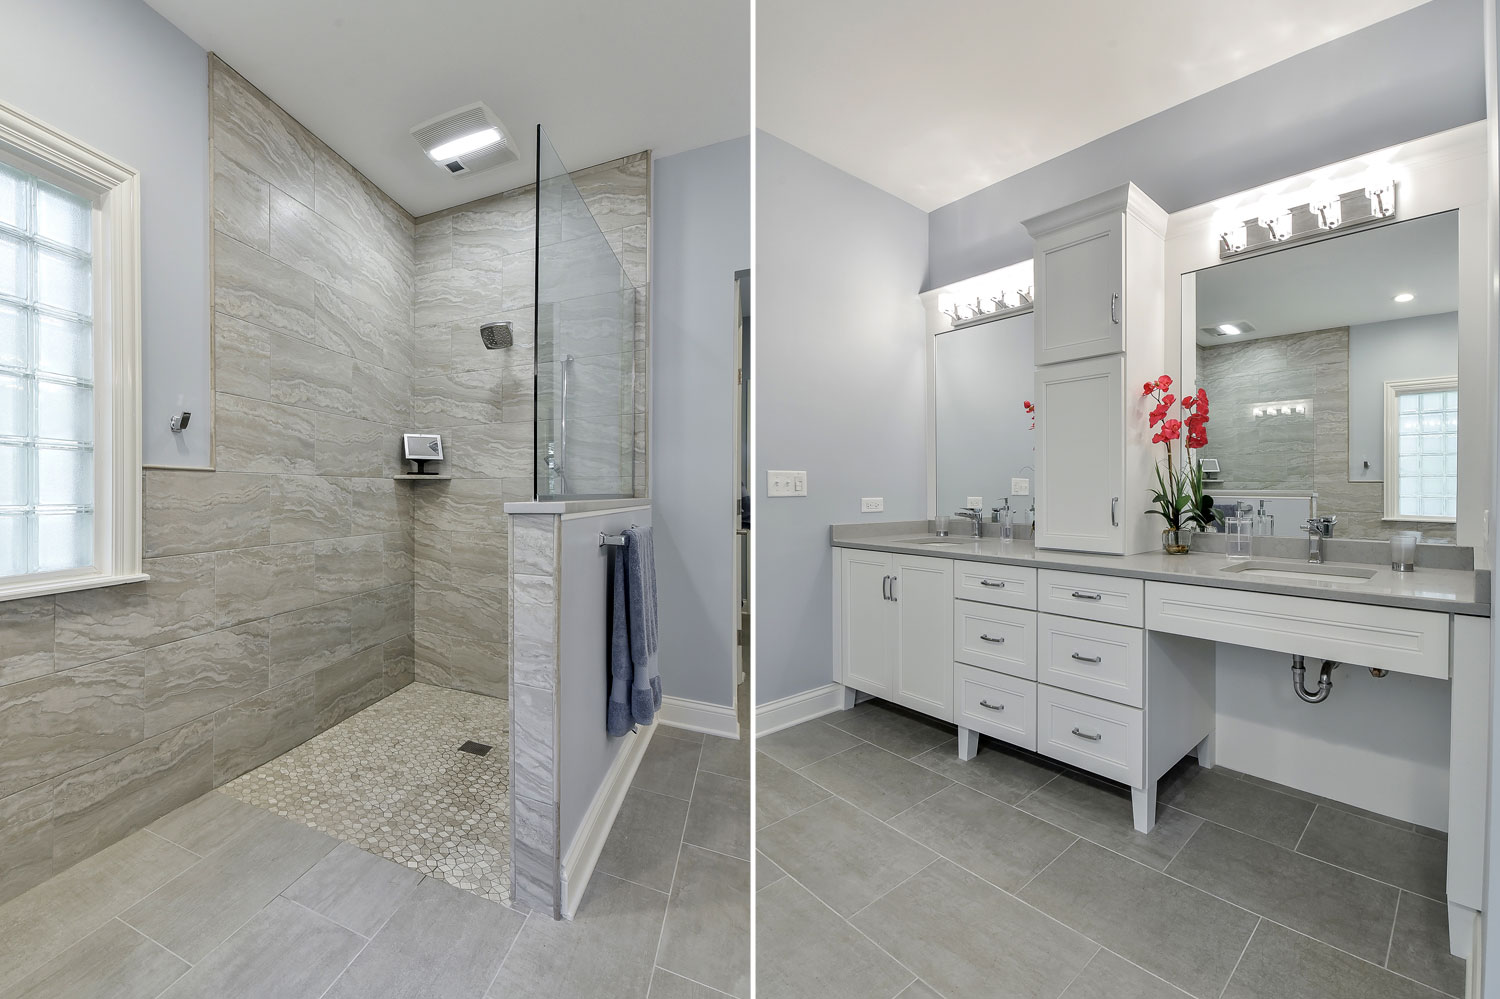 Naperville bathroom curbless modern - Sebring Services